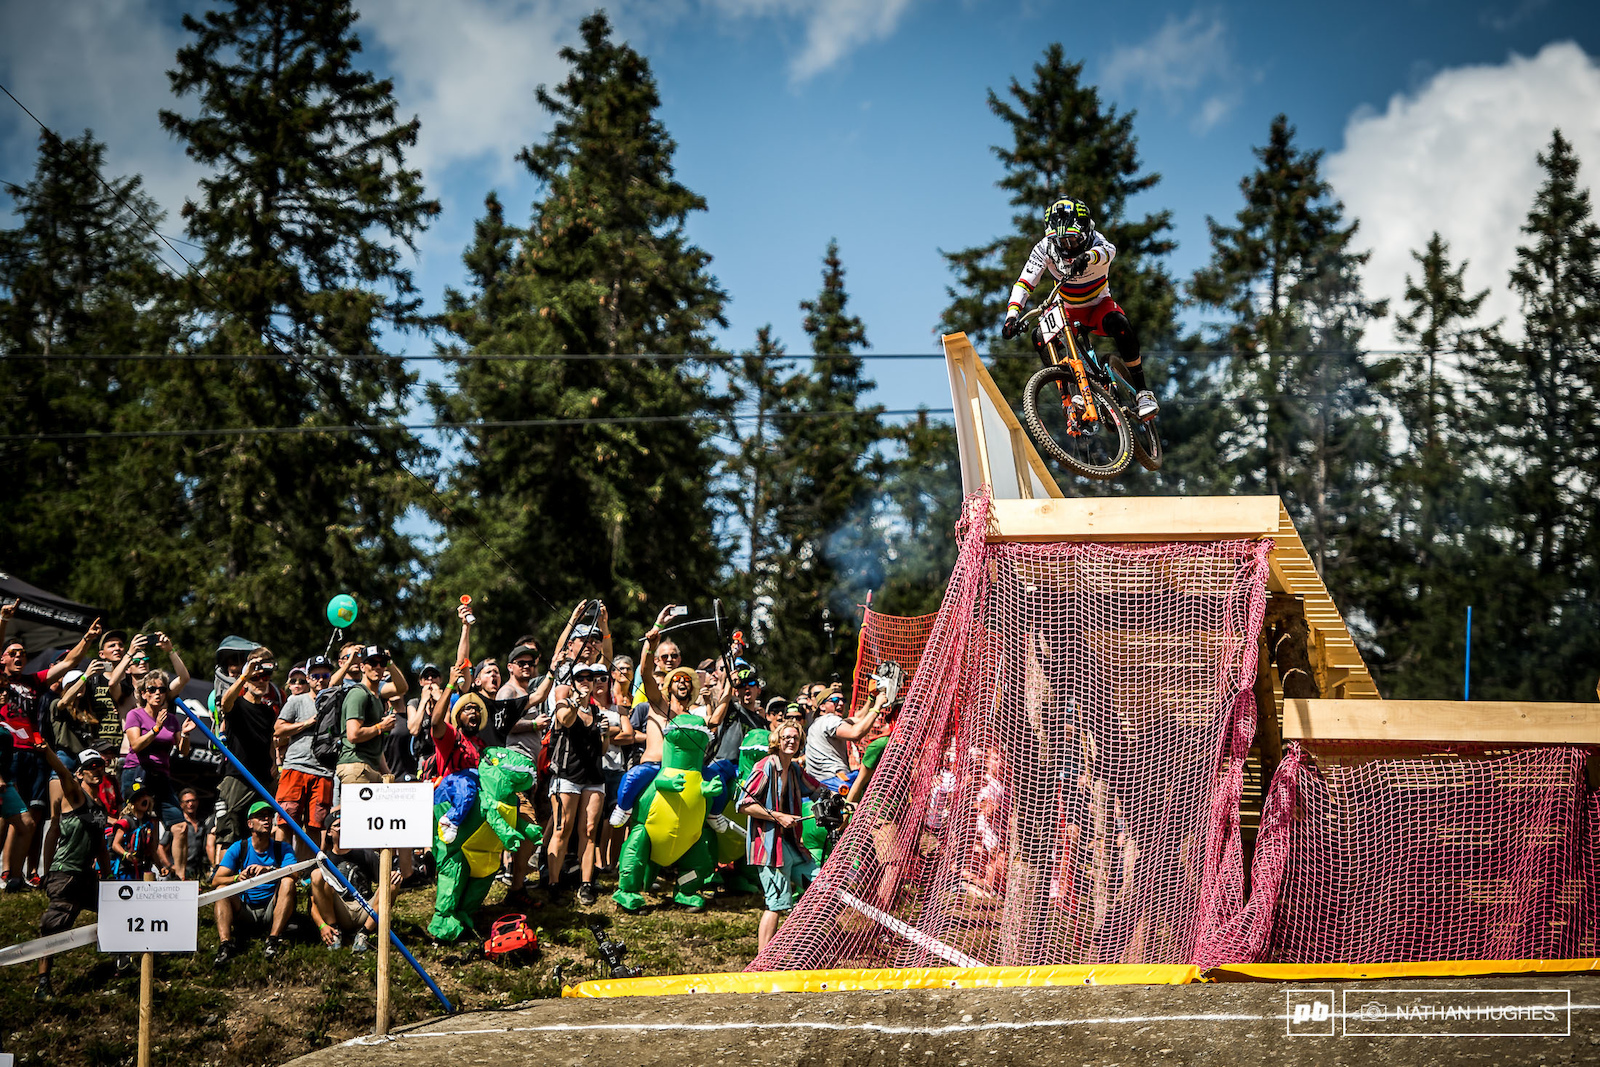 Danny Hart launching of the freeride sender infront of the roaring crowds.